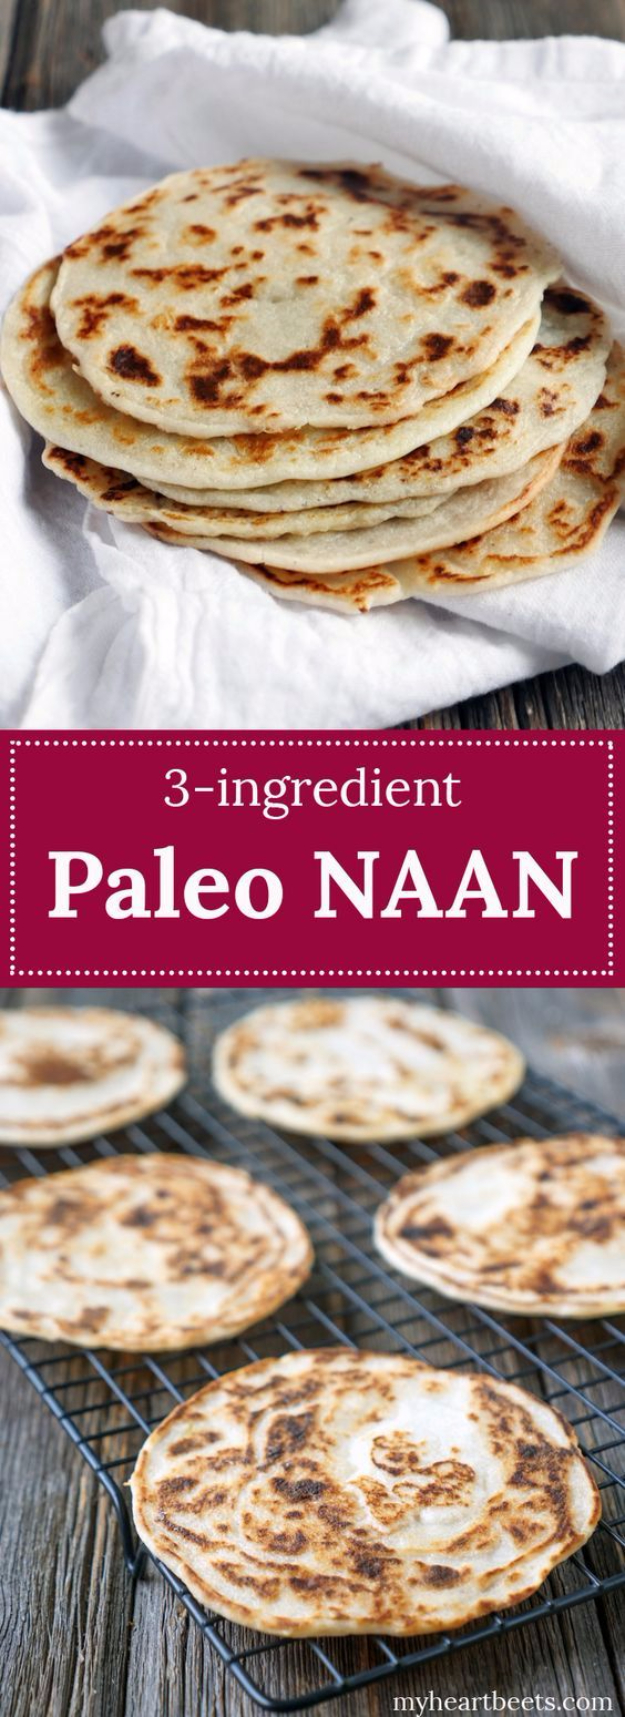 33 Easy Three Ingredient Recipes - 3 Ingredient Paleo Naan Bread - Quick And Healthy 3 Ingredients Recipe Ideas for Breakfast, Lunch, Dinner, Appetizers, Snacks and Desserts - Cookies, Chicken, Crockpot Ideas, Baking and Microwave Recipes and Tutorials #easyrecipes #quickrecipes